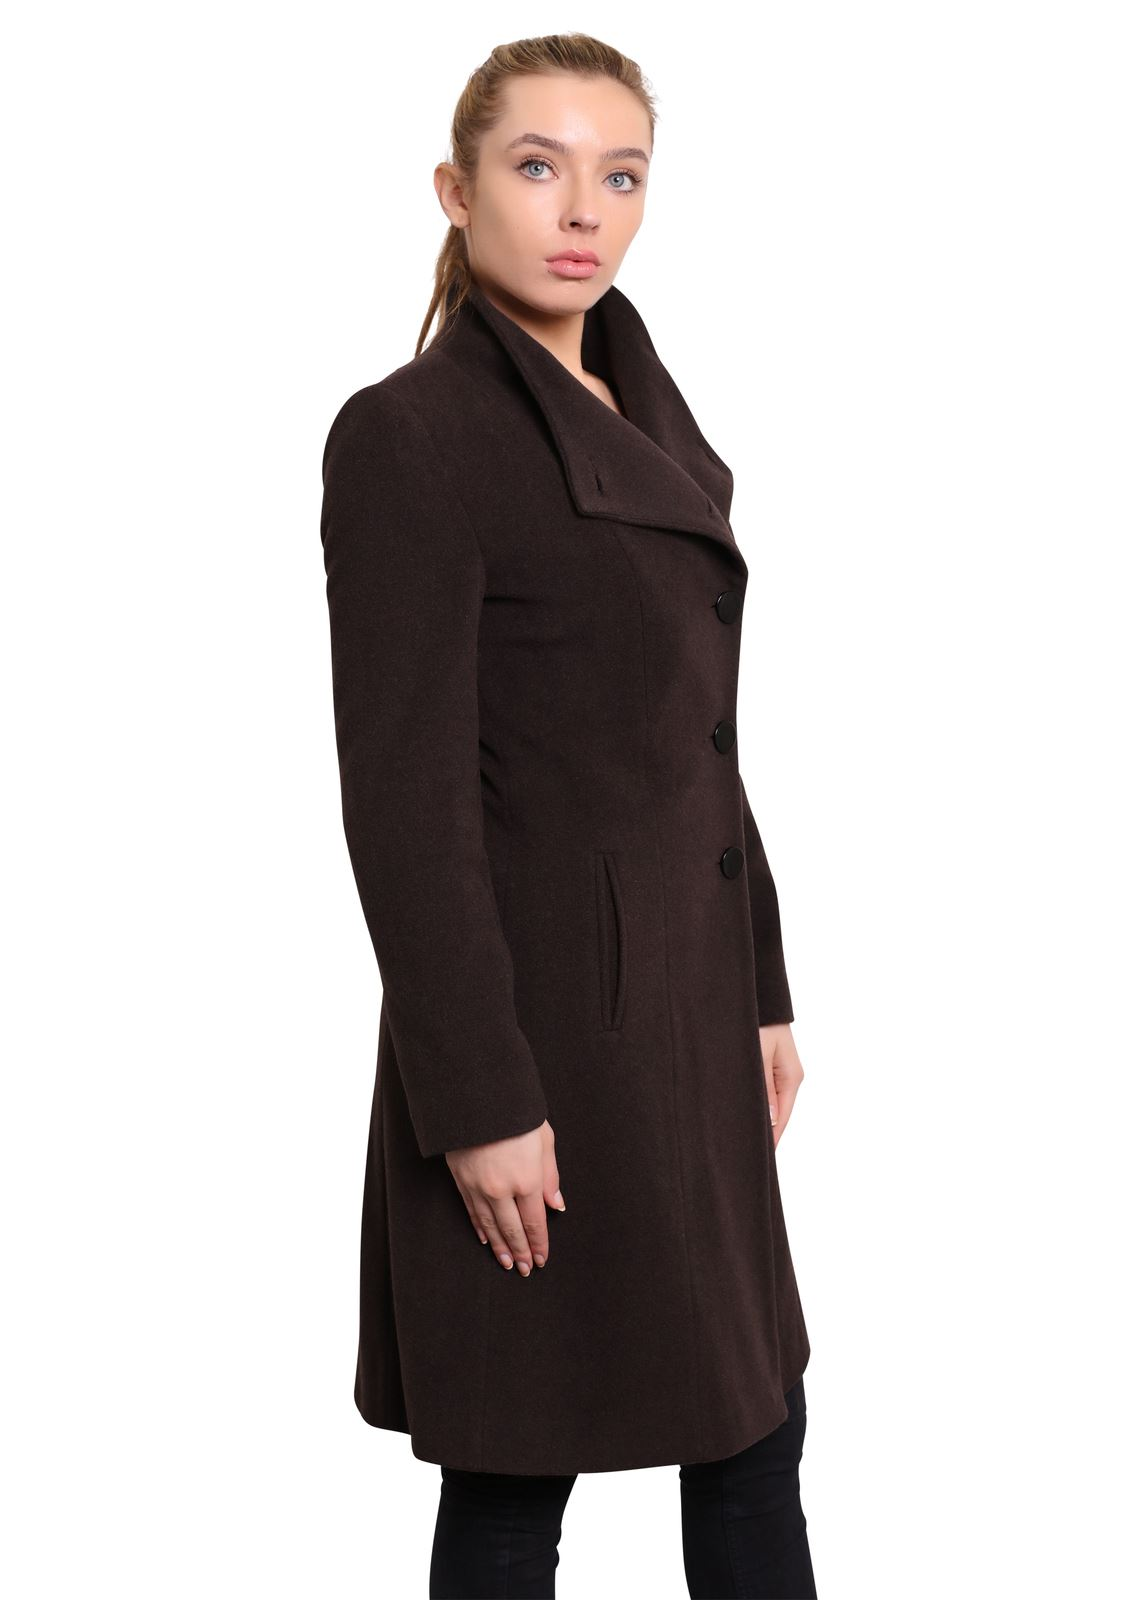 De-La-Creme-Womens-Funnel-Neck-Wool-amp-Cashmere-Blend-Keep-It-Simple-Coat thumbnail 8